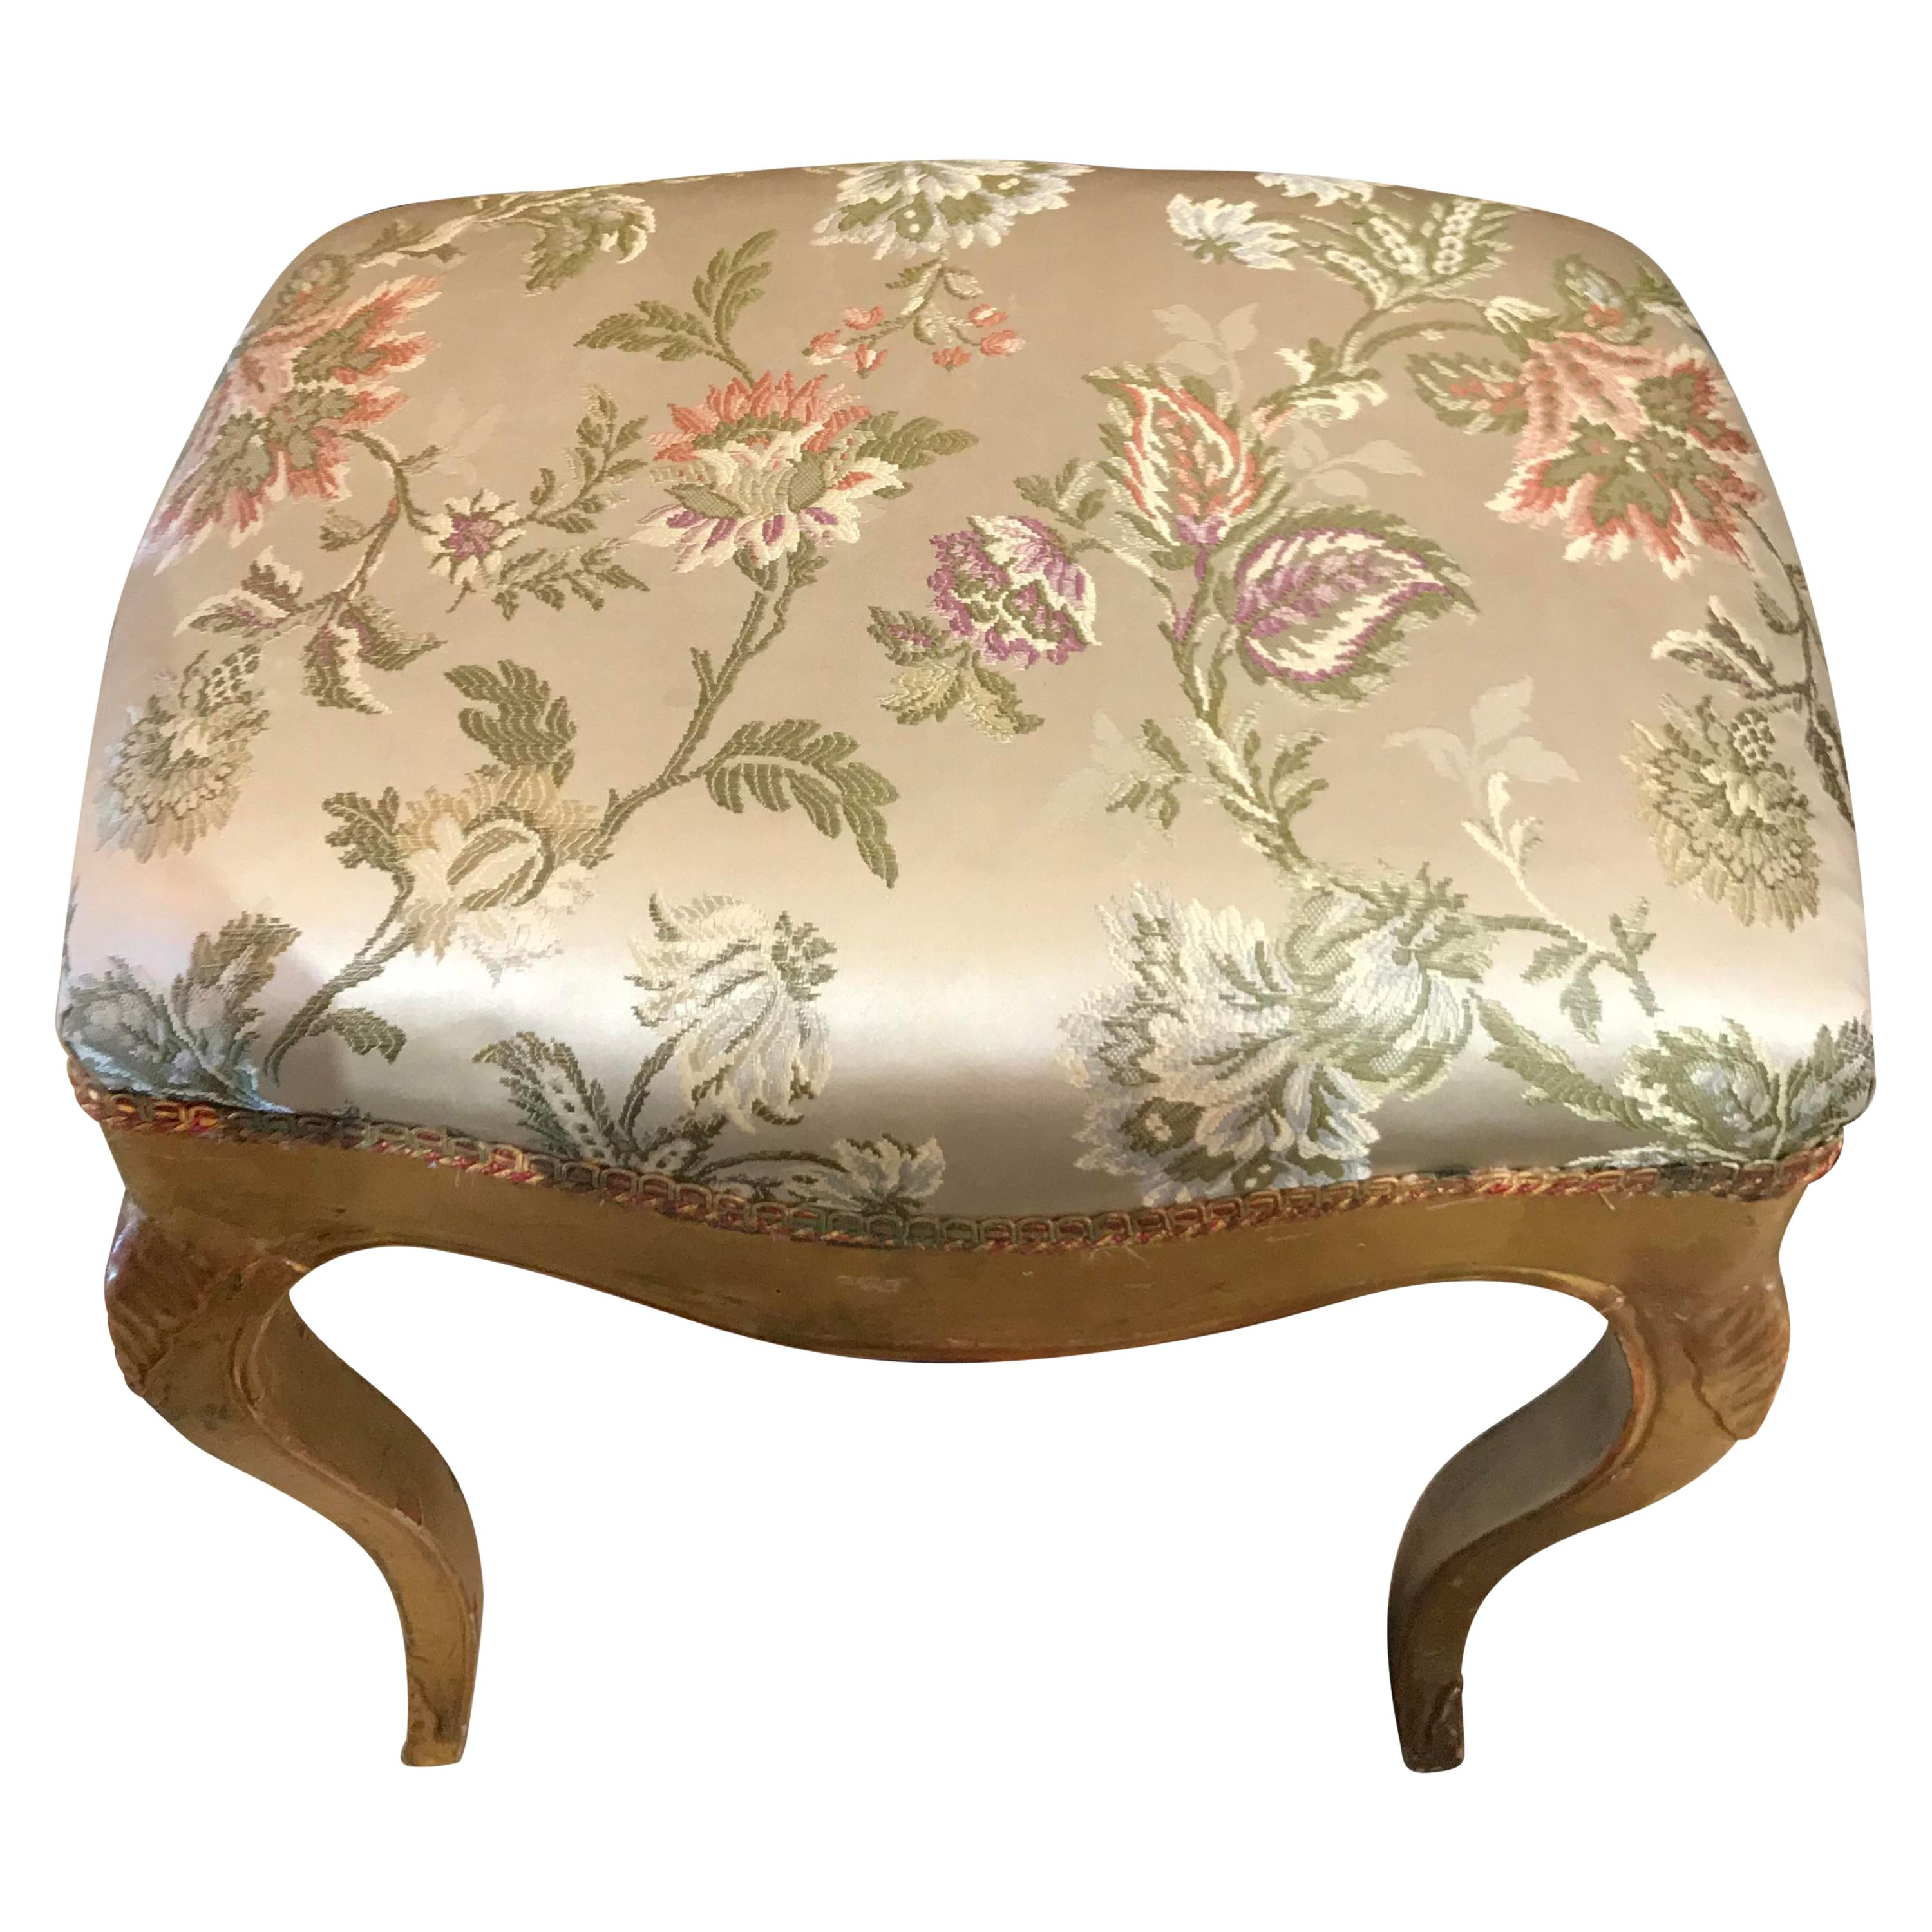 French 19th Century Giltwood Stool with Silk Upholstery